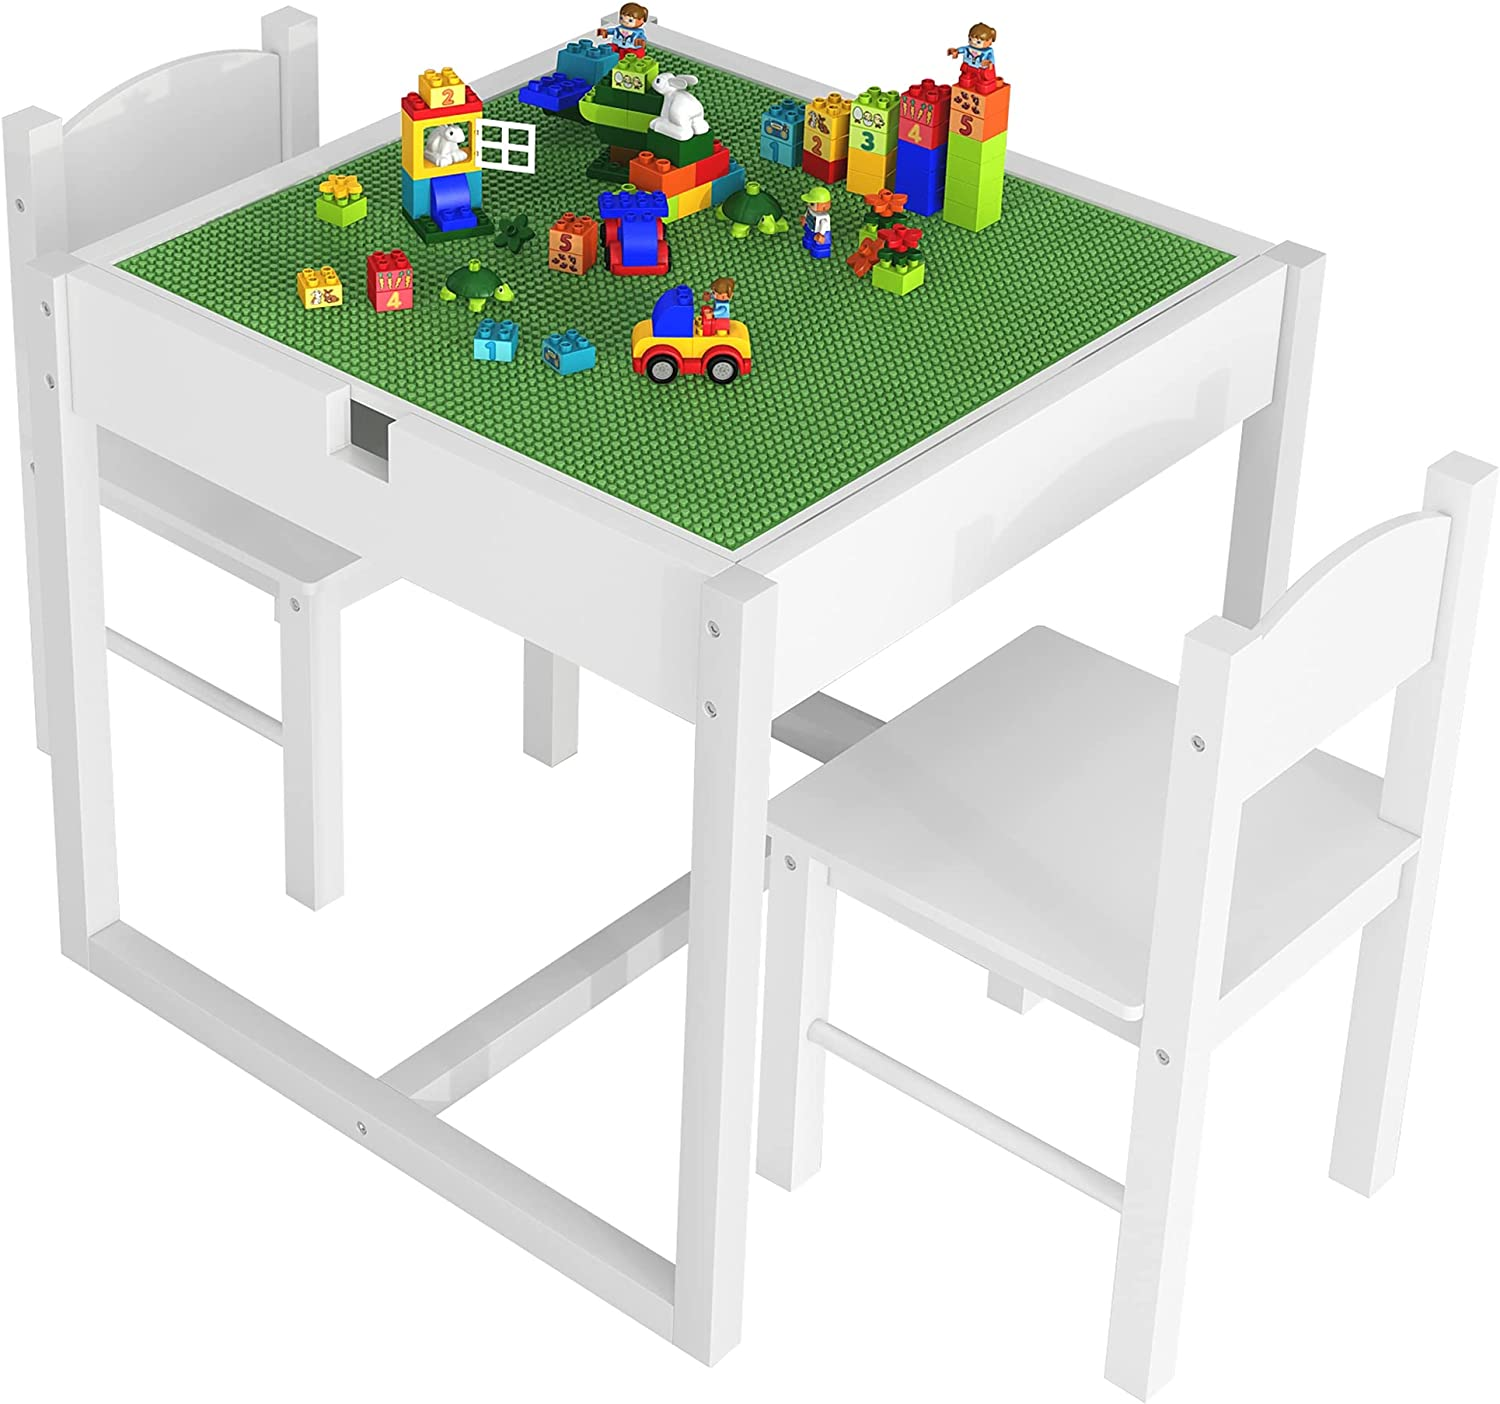 4NM 2 in 1 Kids Activity Table and 2 Chairs Set with Hidden Storage Compartment, Wood Play Building Block Table for Toddlers Children (White)